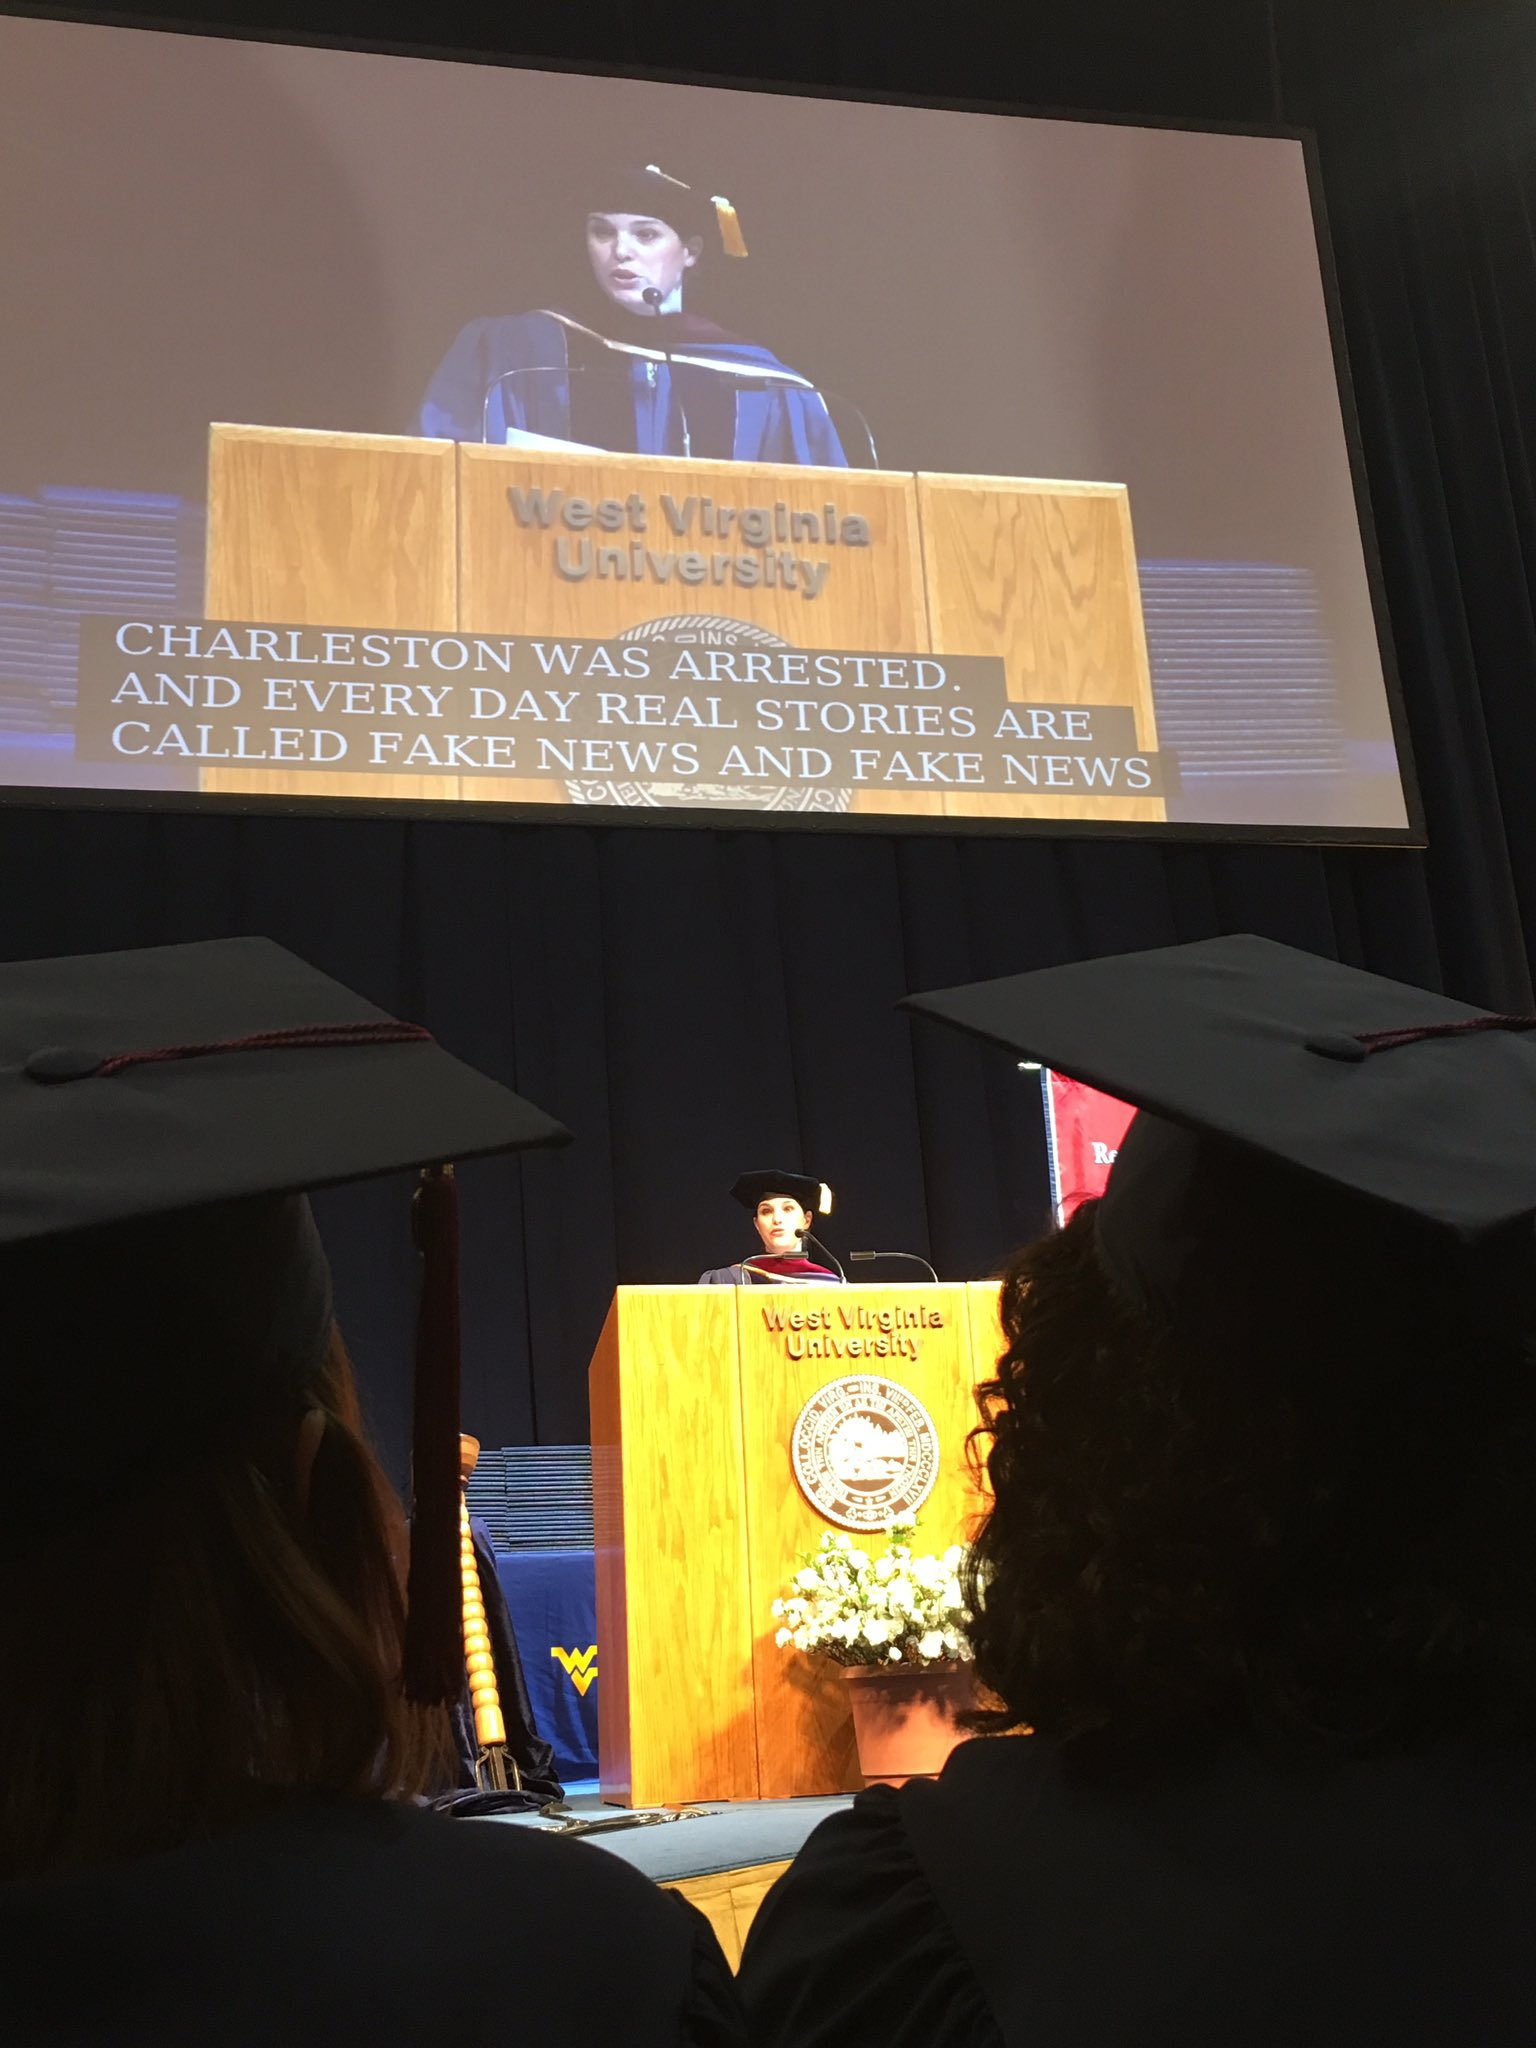 """@MargieMasonAP speaking at @wvumediacollege graduation: """"Now is an exciting time to be working in communications."""" https://t.co/fmgyCEOg5R"""